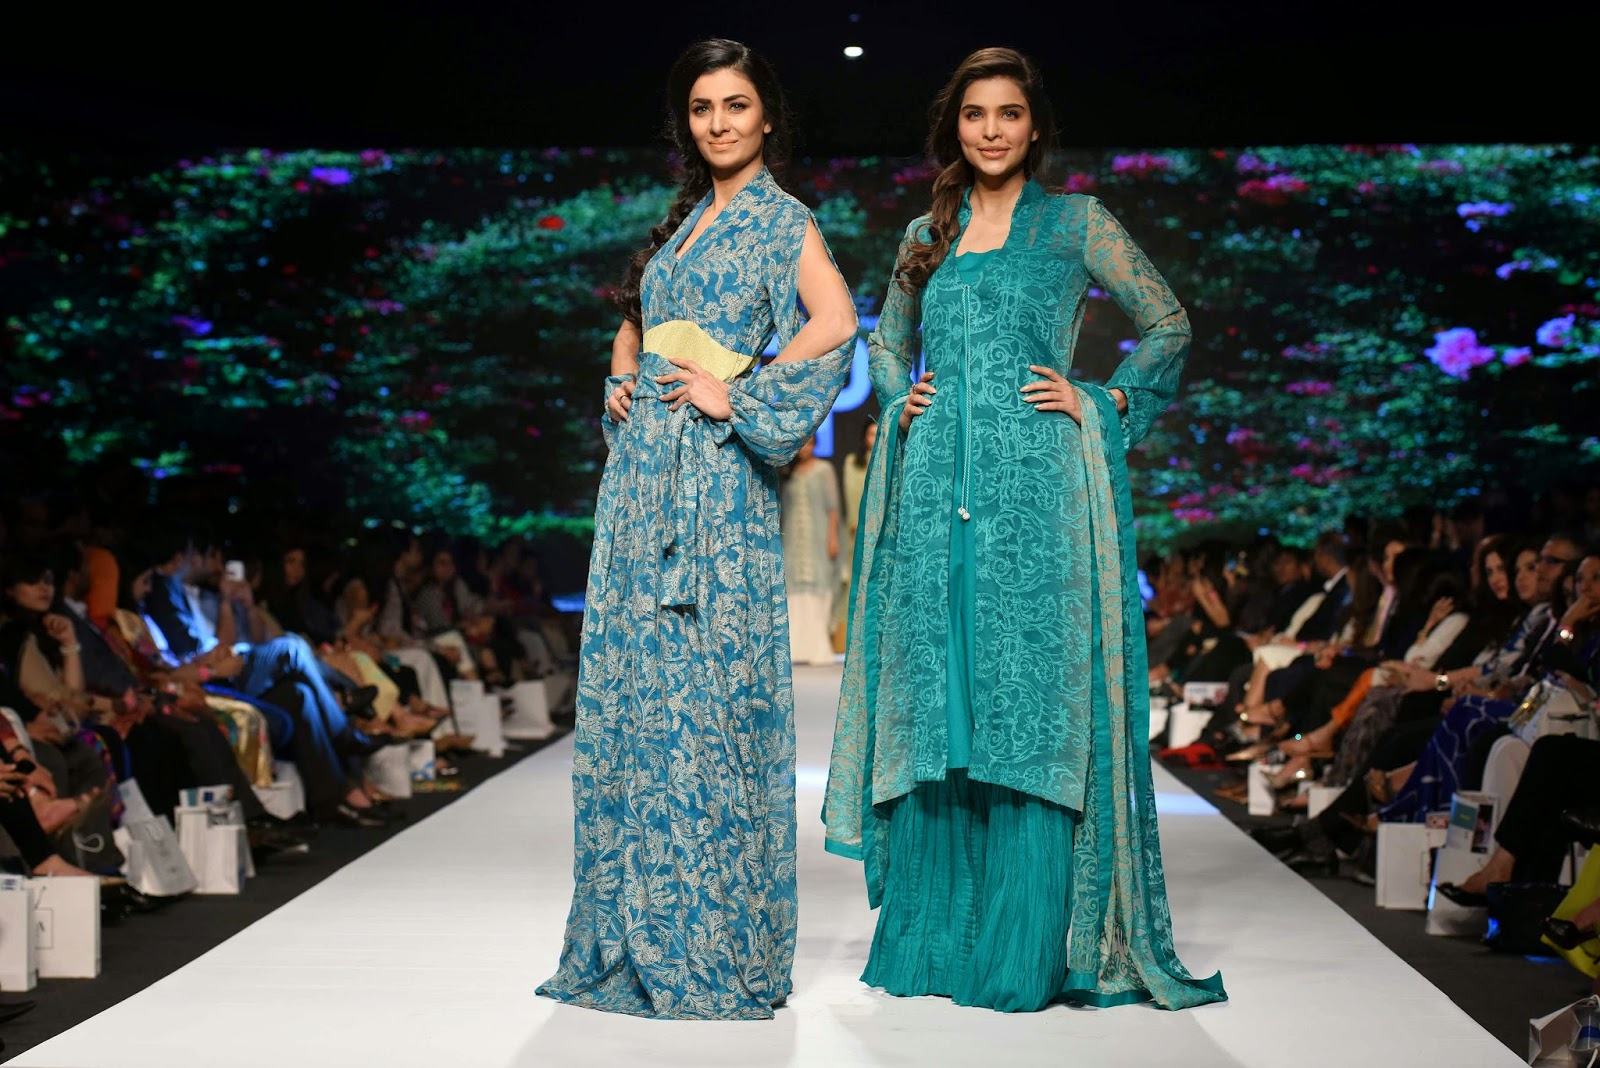 sana sarfaraz Lala Textiles Telenor Fashion Pakistan Week 2015 Day 1